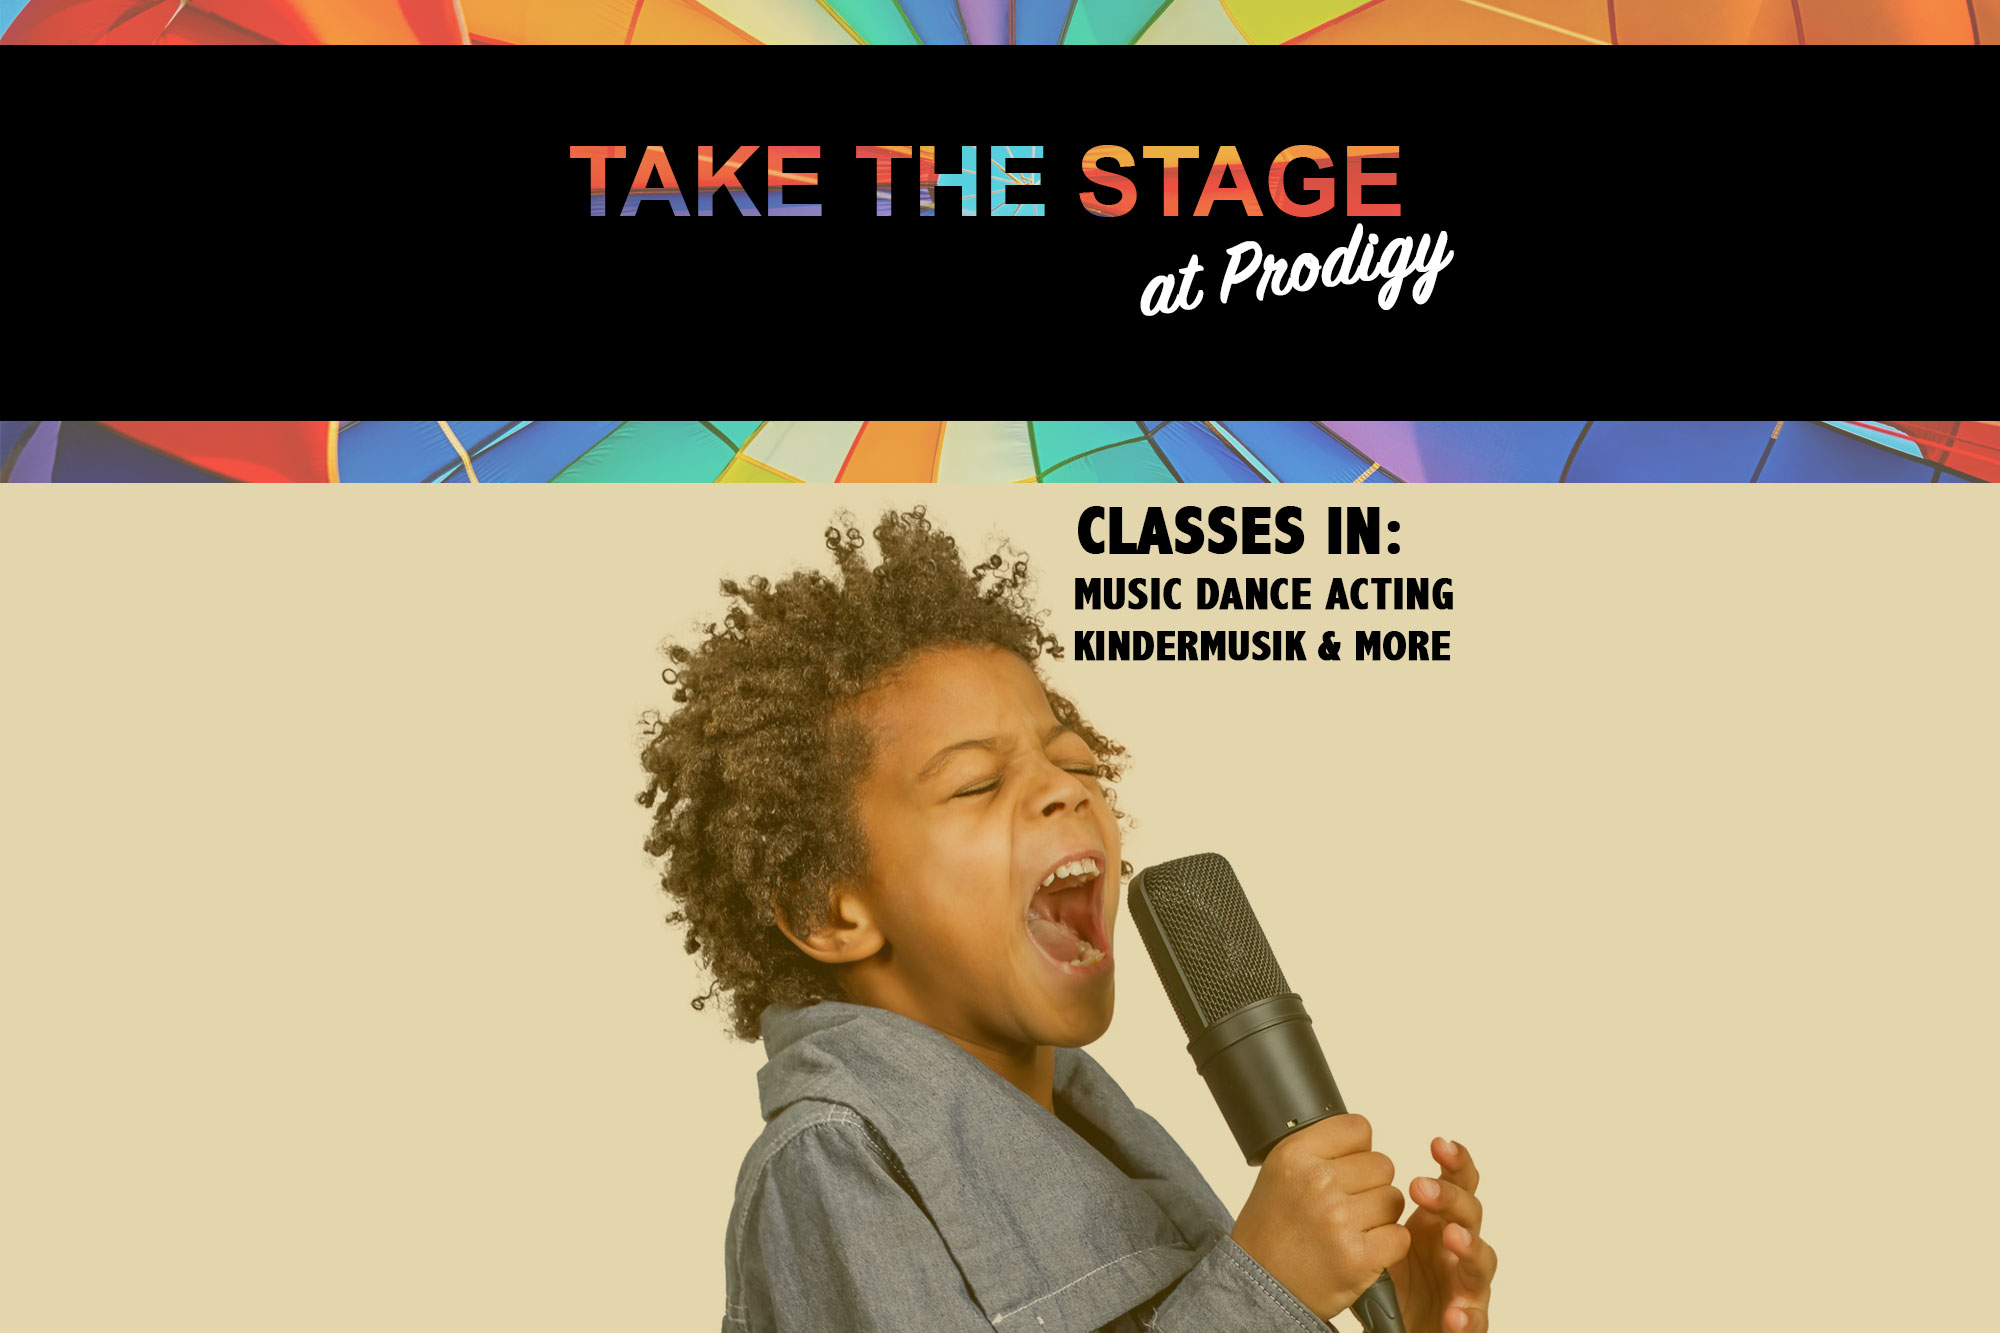 Take The Stage At Prodigy